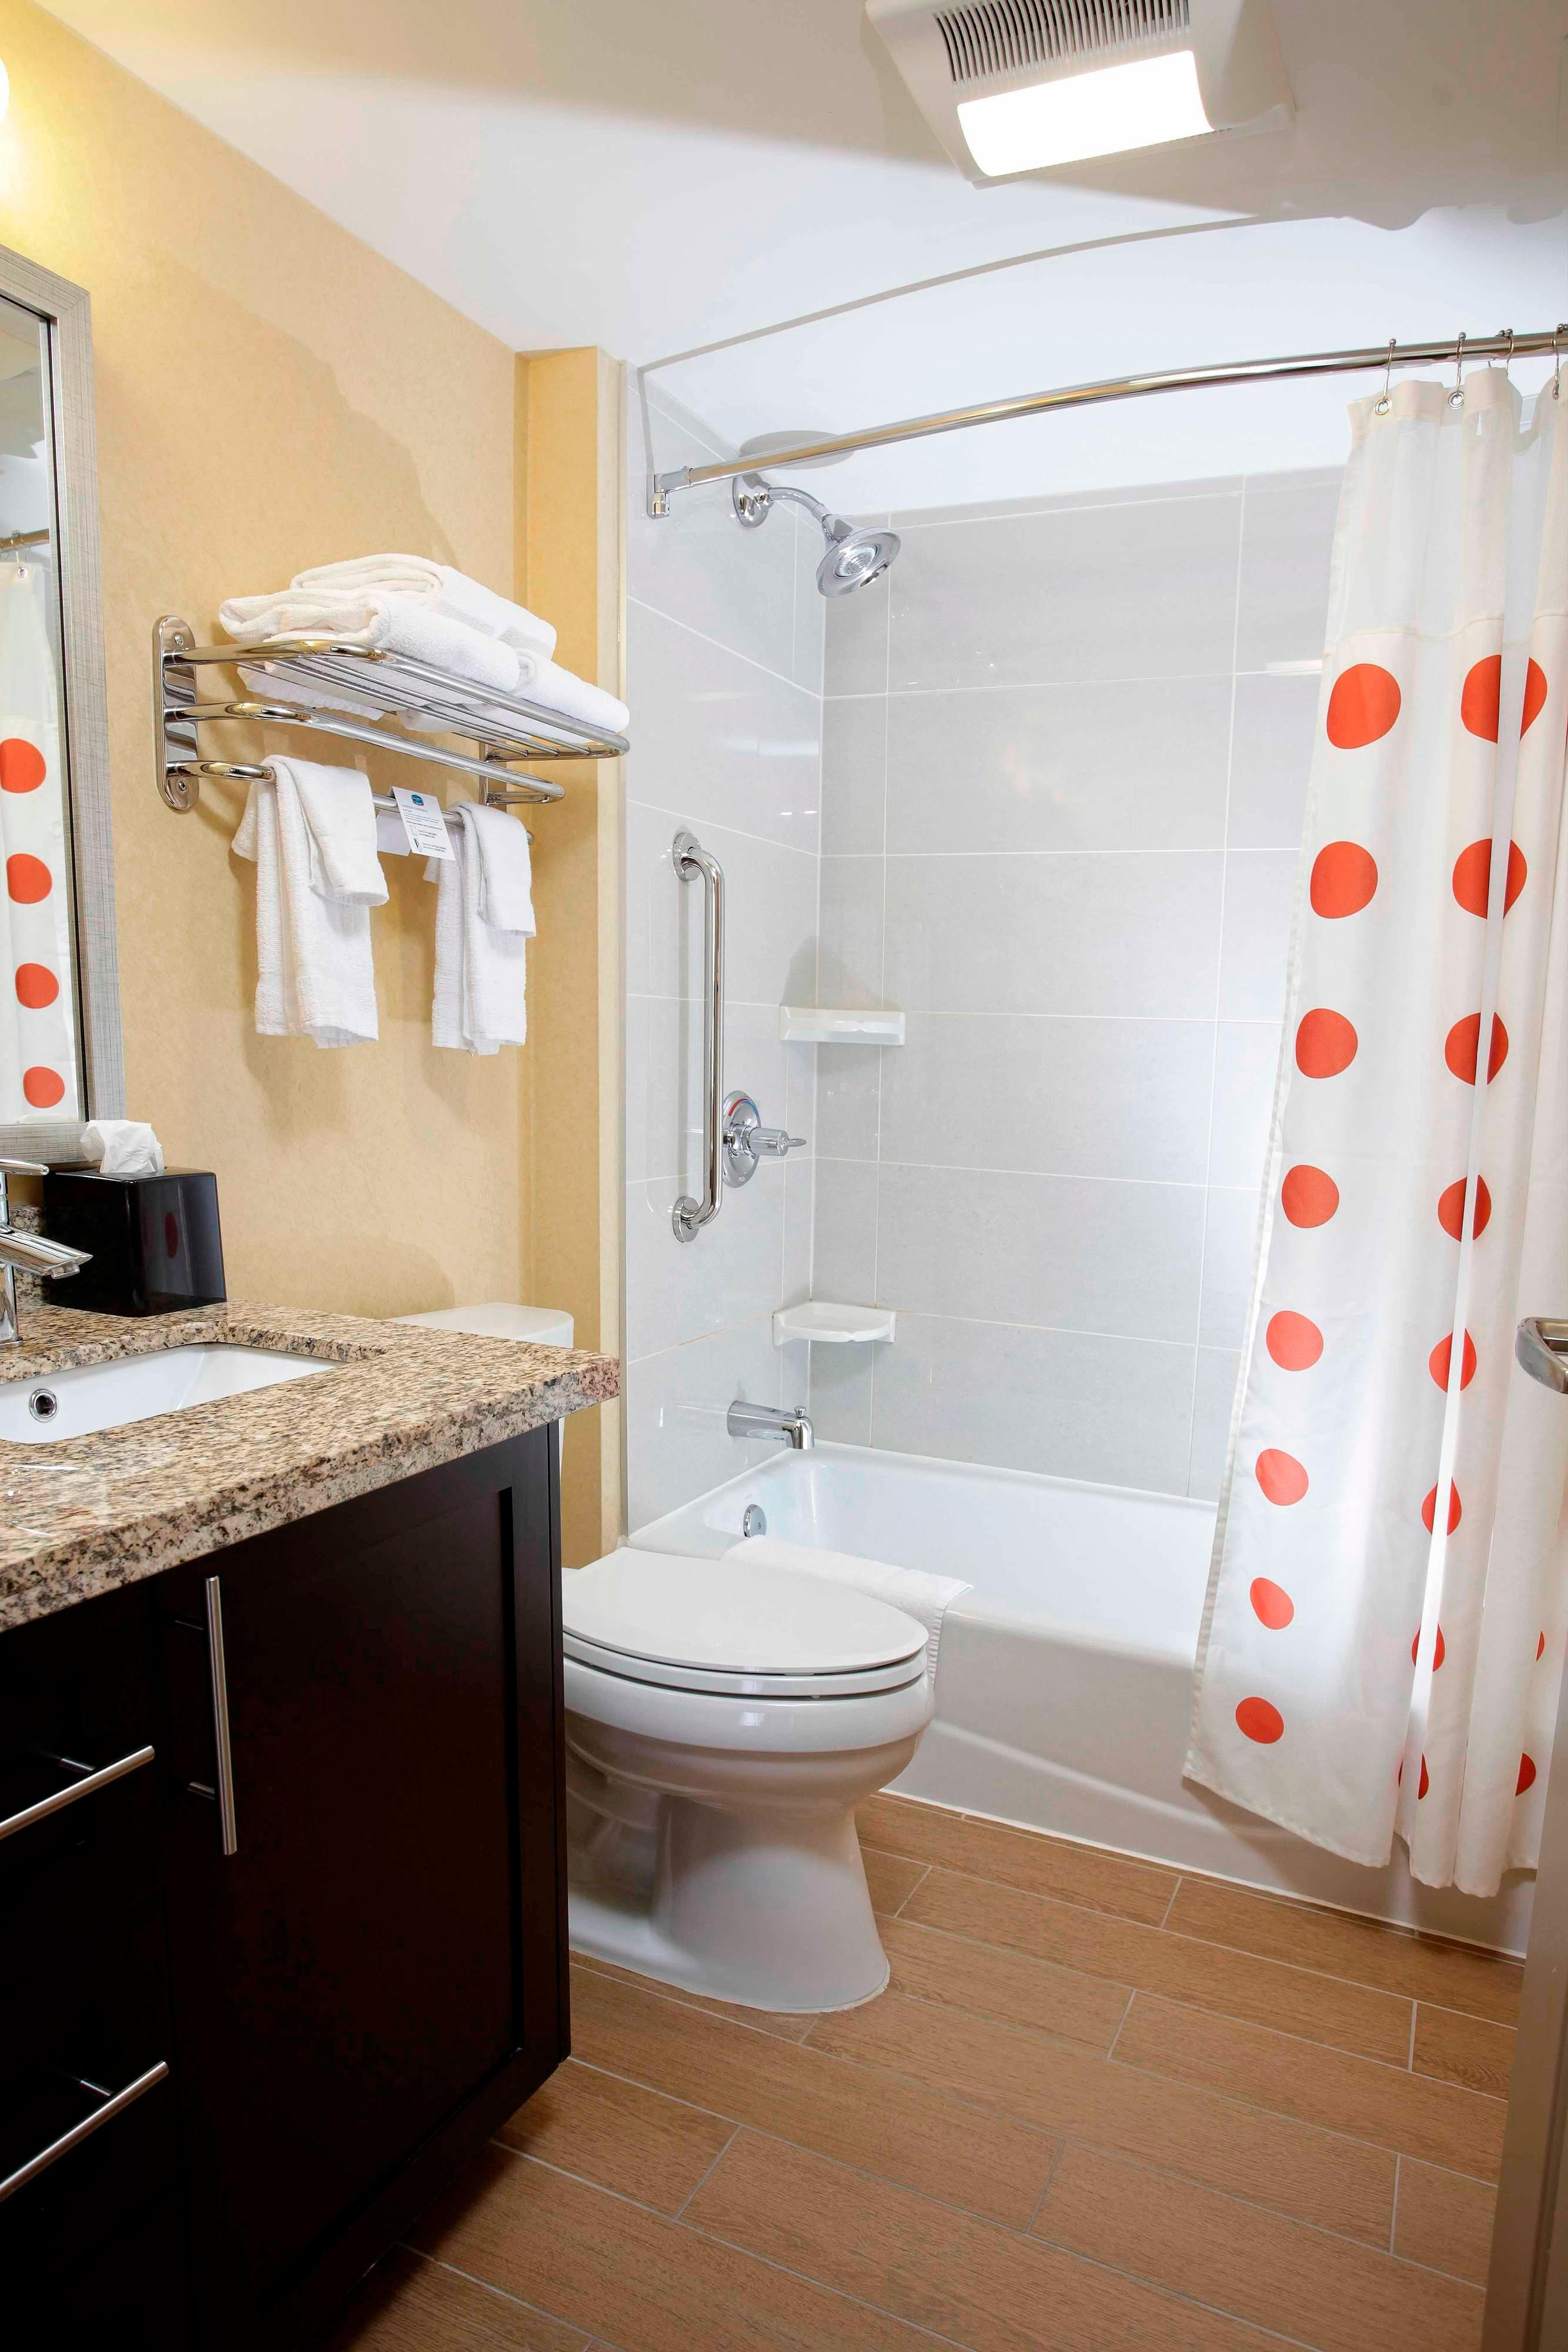 TownePlace Suites Bathroom